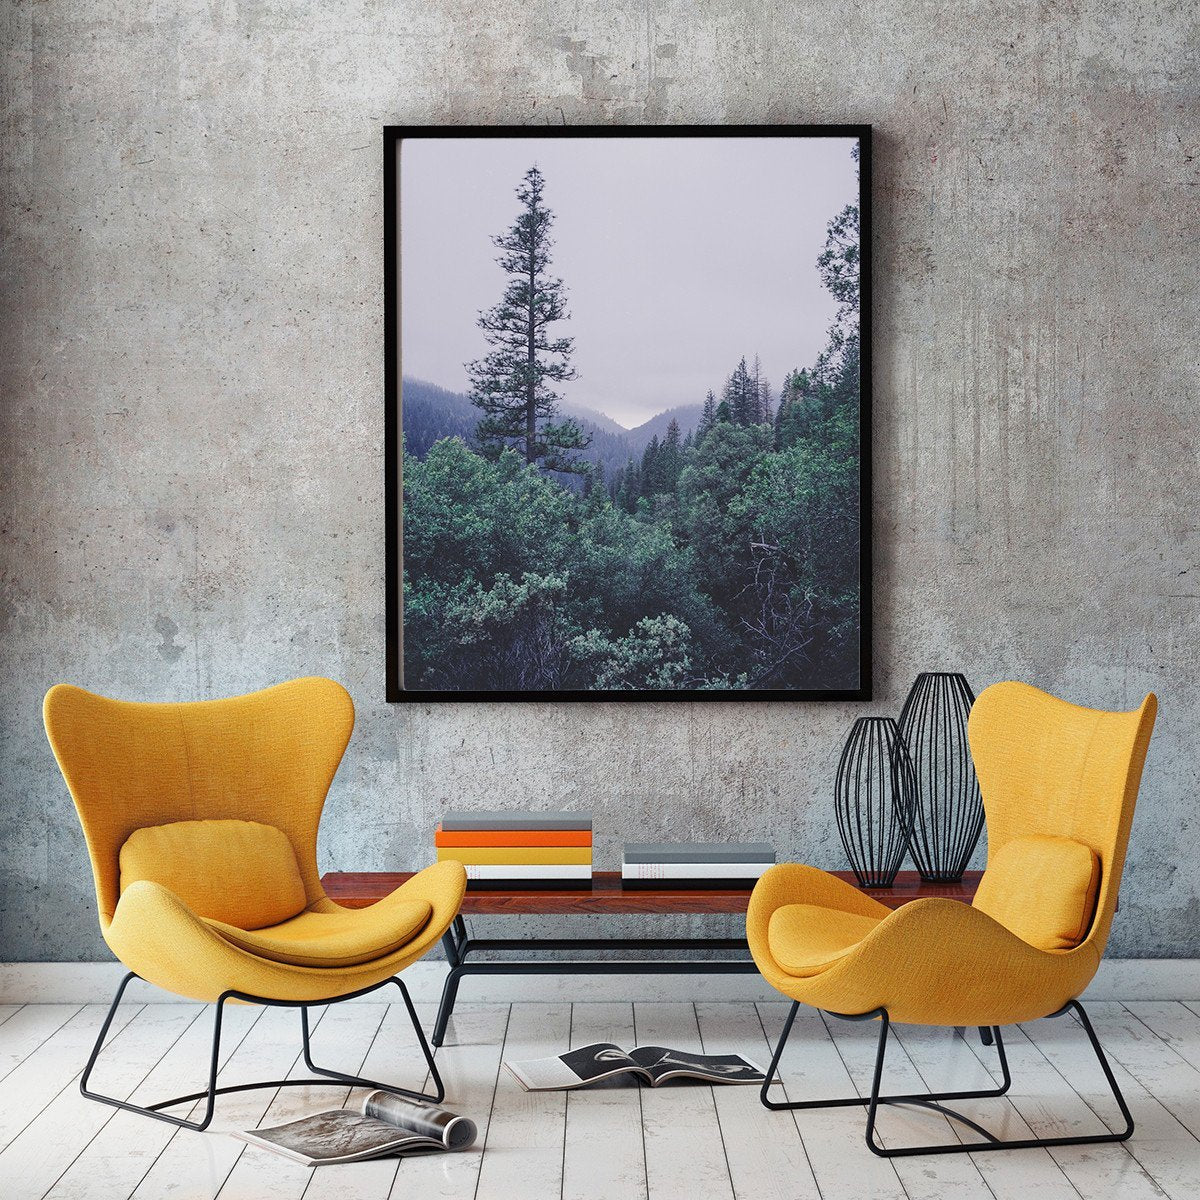 Rainy Sierra Nevada Mountain View, Modern Wall Art Print